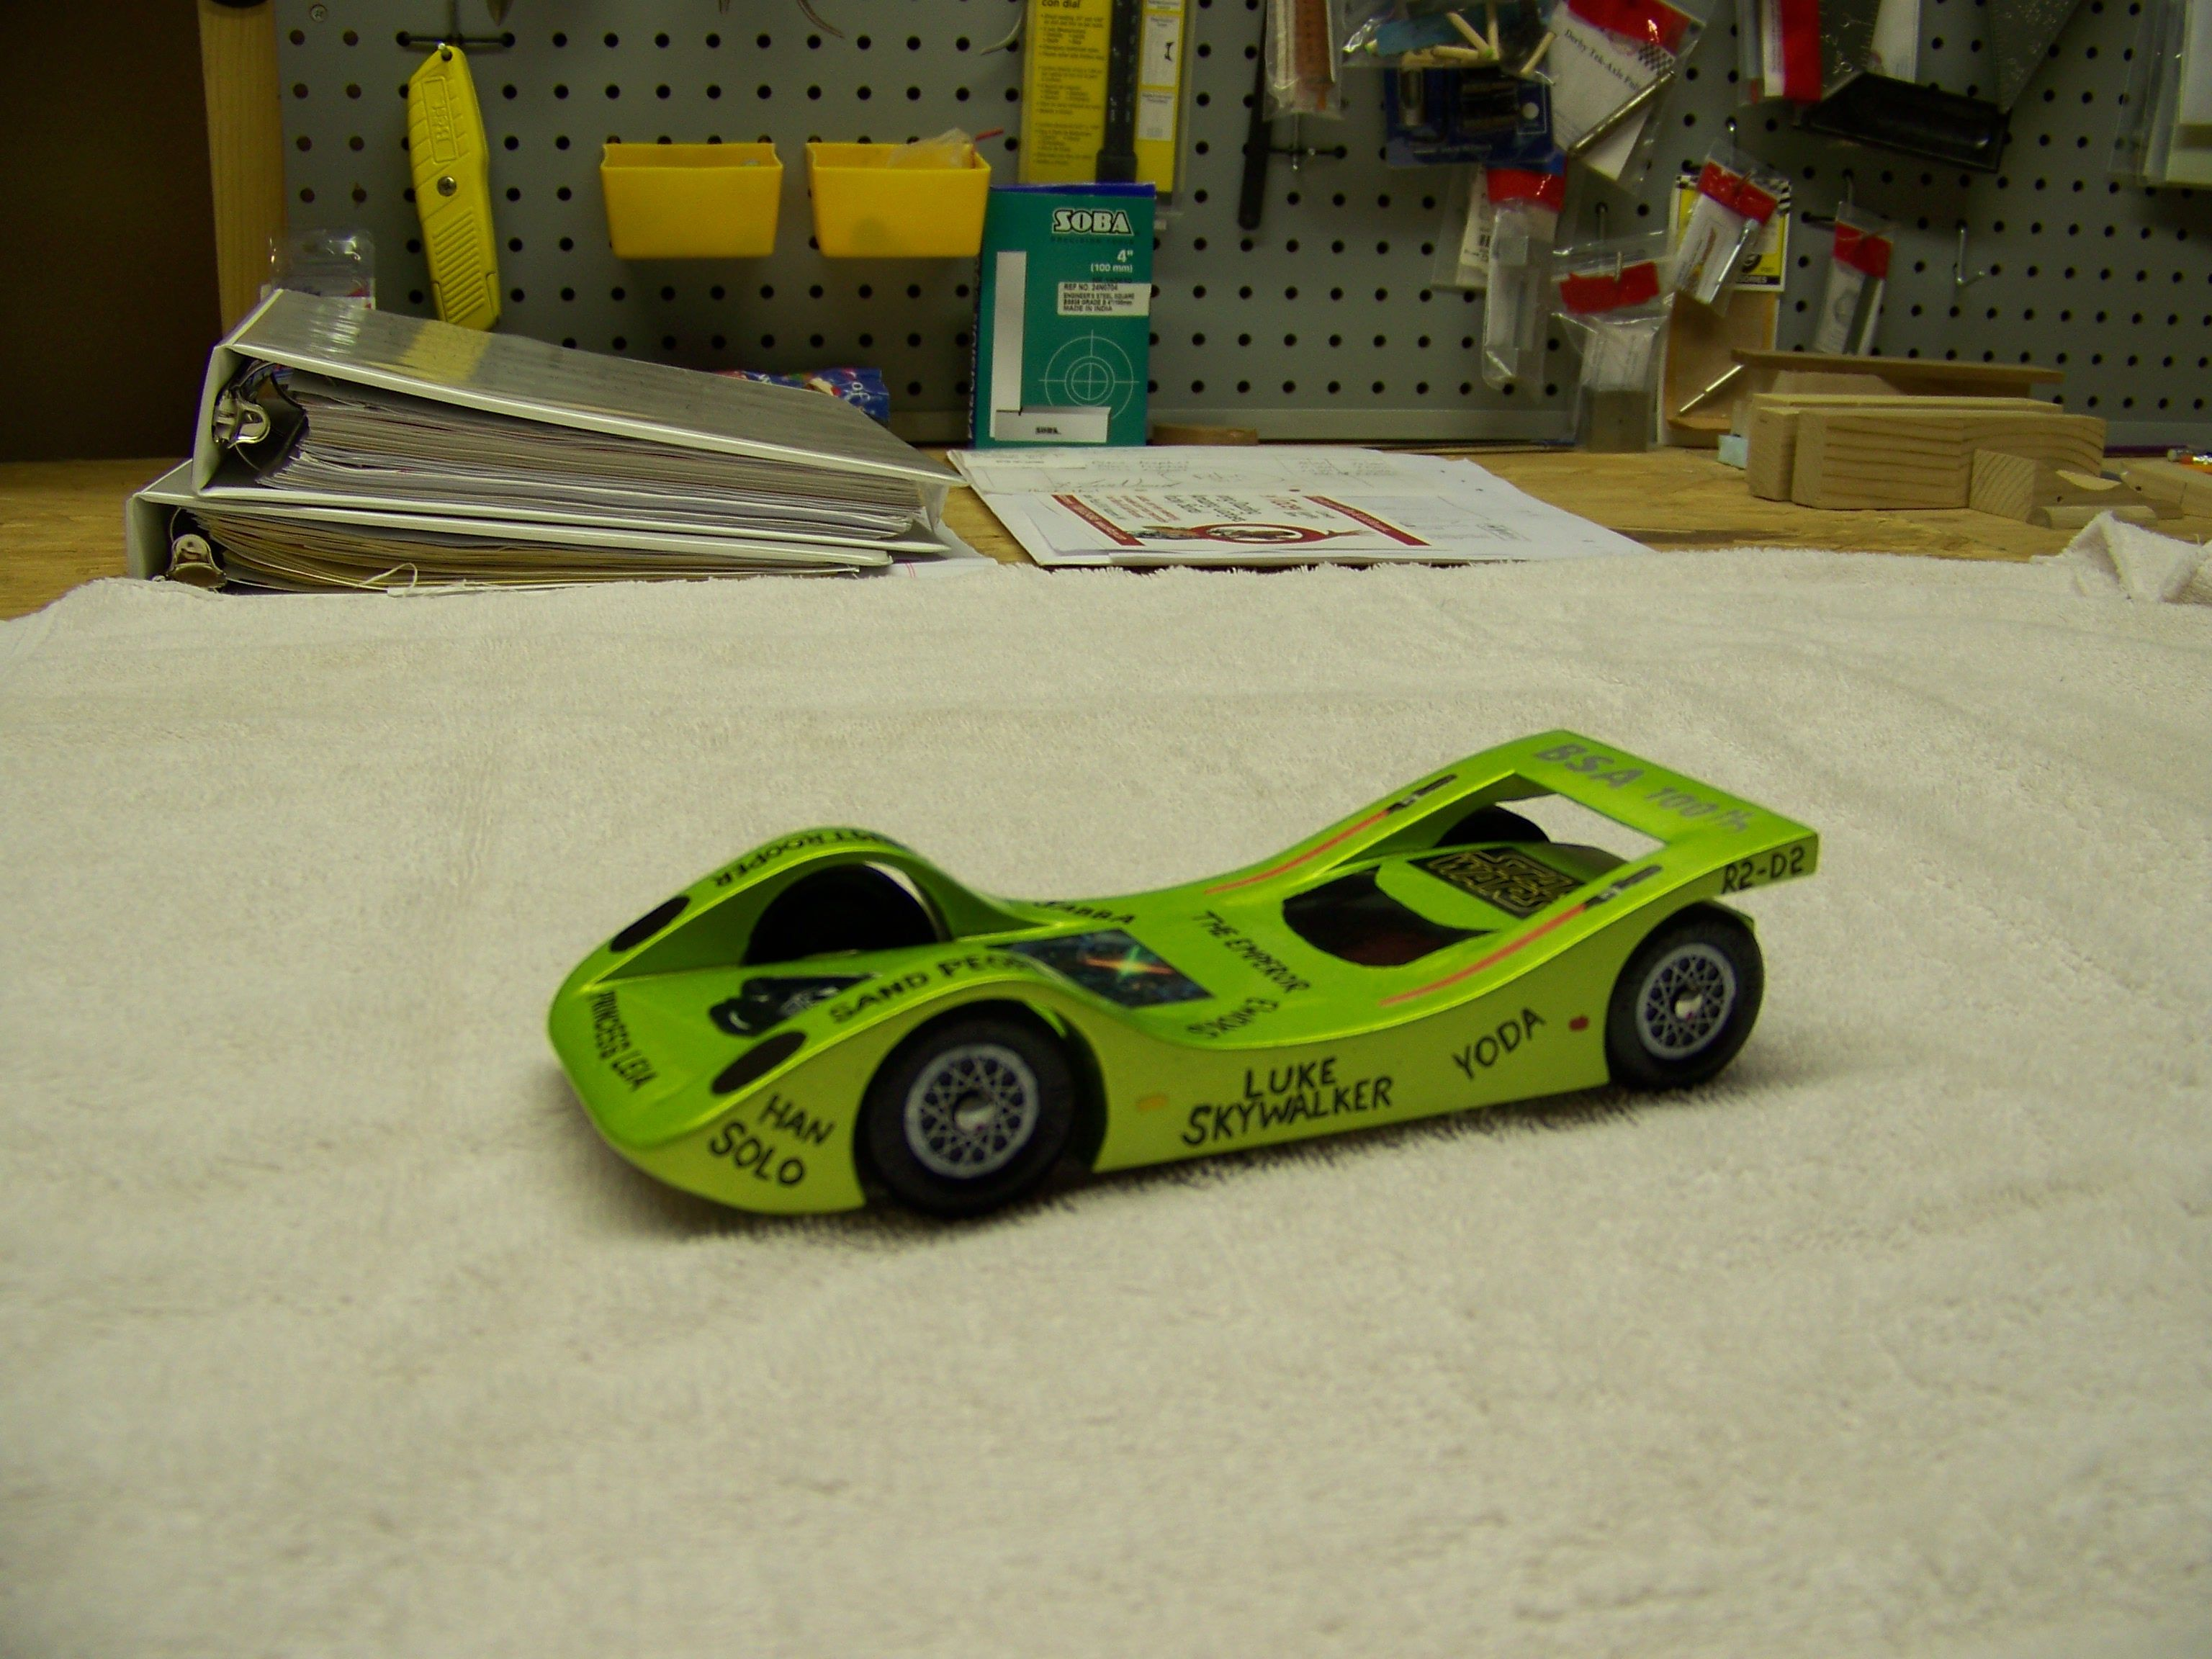 pinewood derby car designs | Pack 3309 Freeland, Michigan | pinewood ...